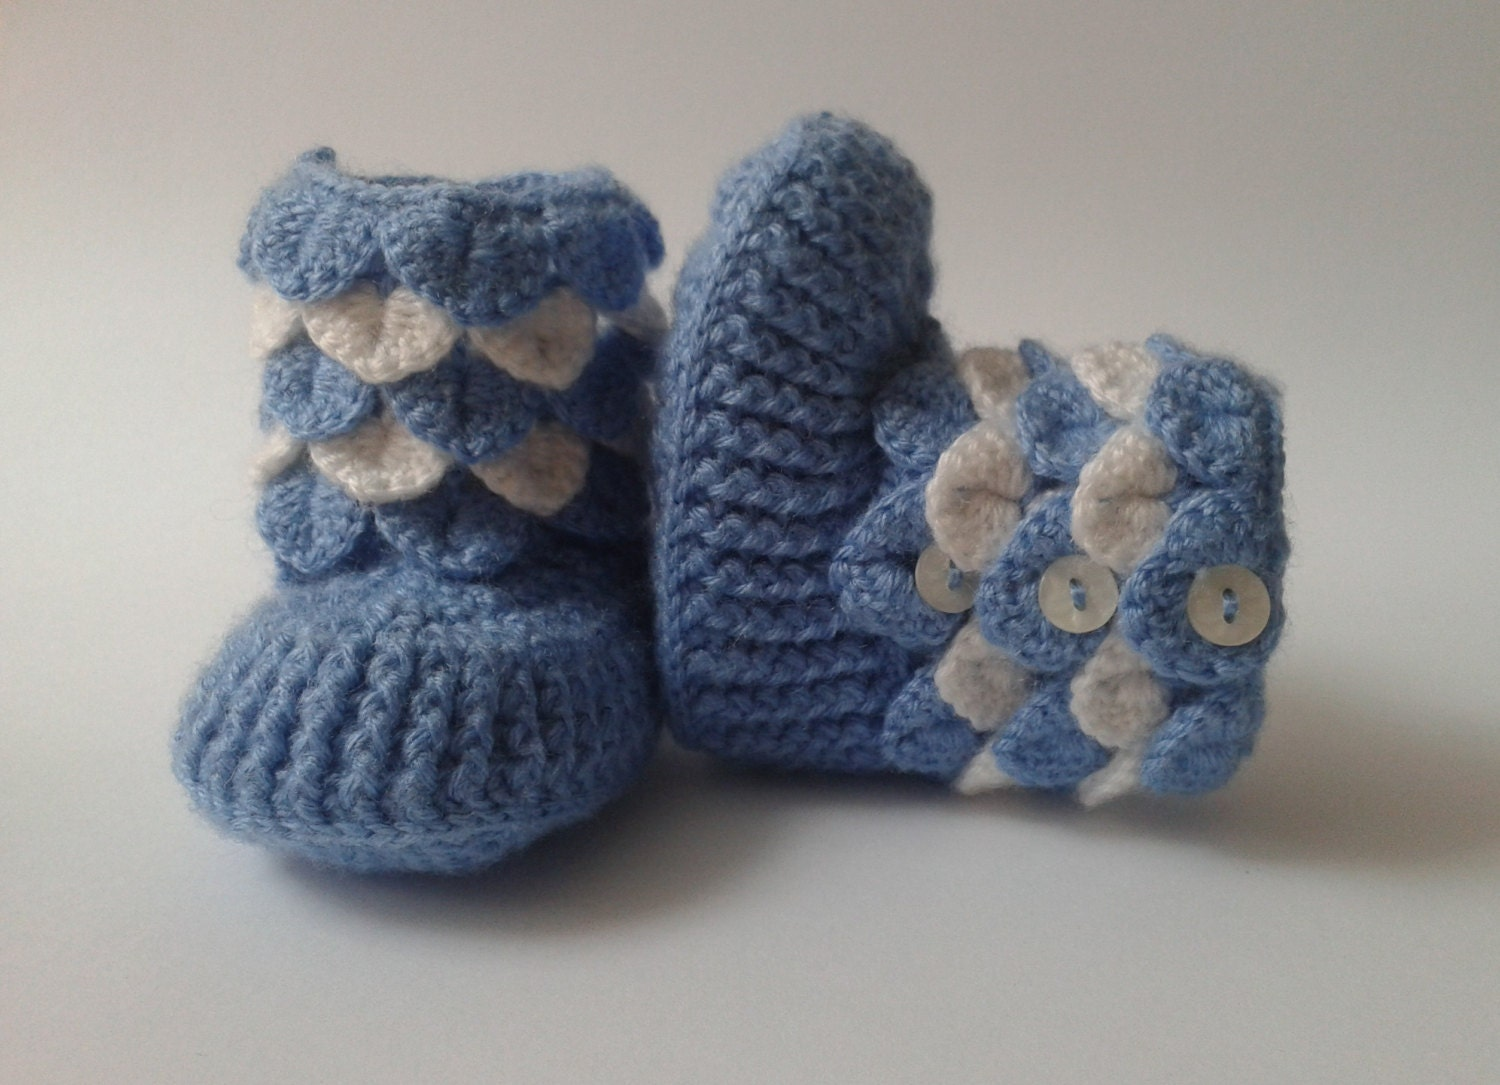 Crochet Pattern For Crocodile Stitch Baby Booties : Crocodile Stitch Baby Booties/ Crochet Baby boots Crocodile